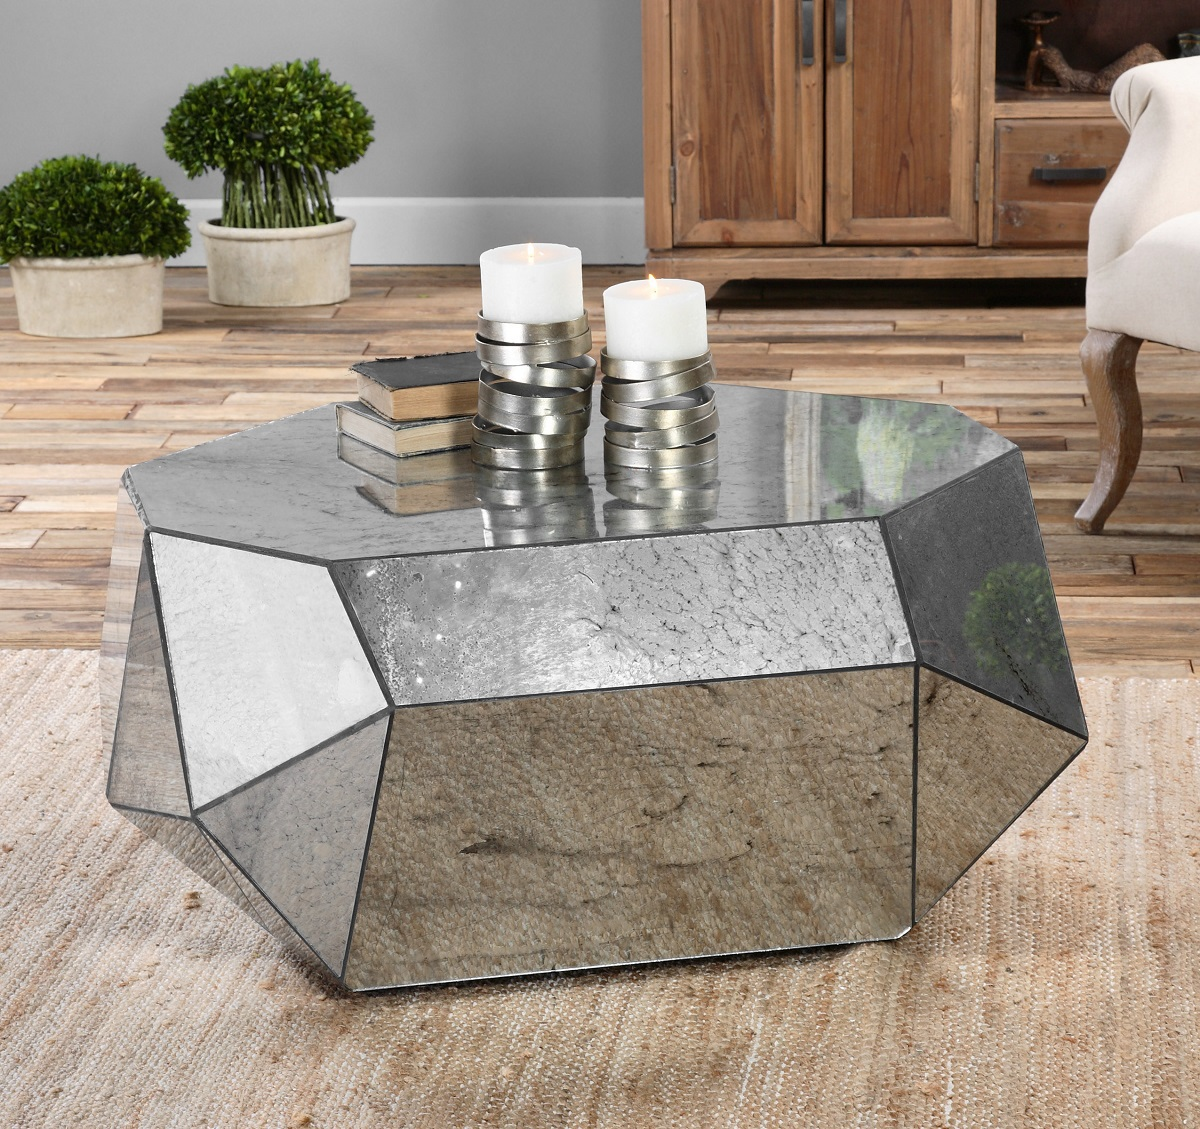 Mirrored Coffee Table | Mirrored Accent Table | Mirrored Foyer Table